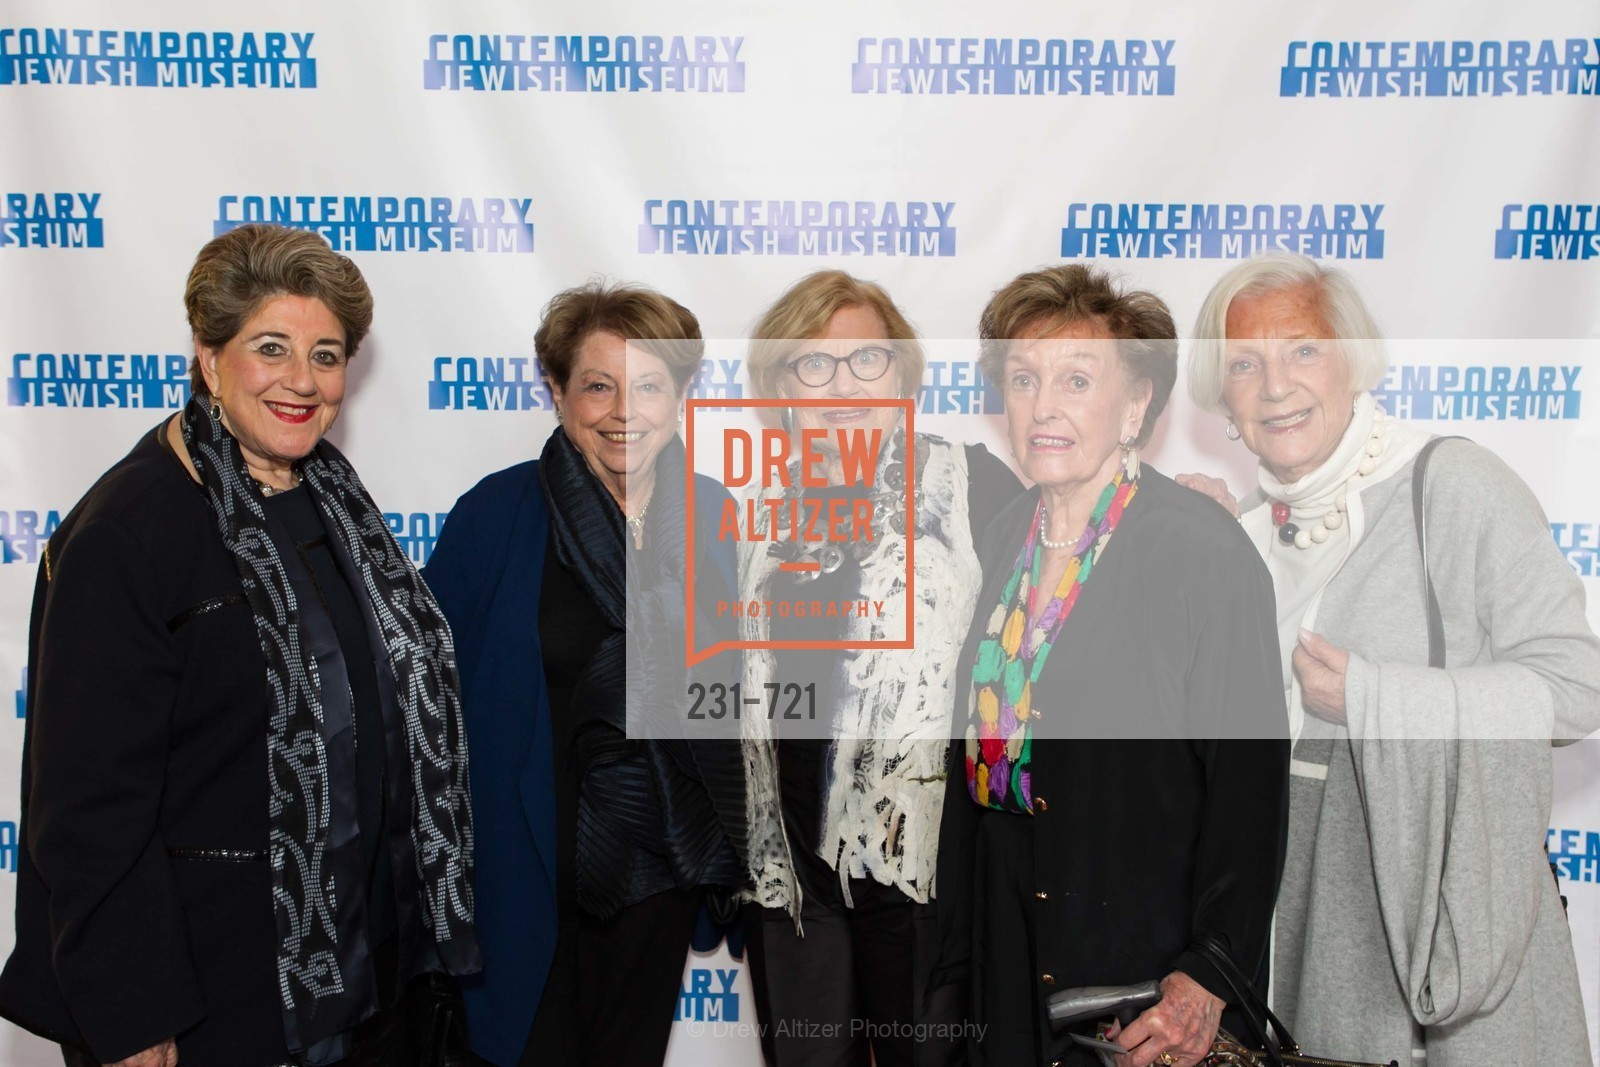 Eileen Battat, Frances Berger, Dorothy Saxe, Selma Kolden, Sally Gradinger, The 2015 Dorothy Saxe Invitational Celebration at the JEWISH MUSEUM, US, May 13th, 2015,Drew Altizer, Drew Altizer Photography, full-service agency, private events, San Francisco photographer, photographer california